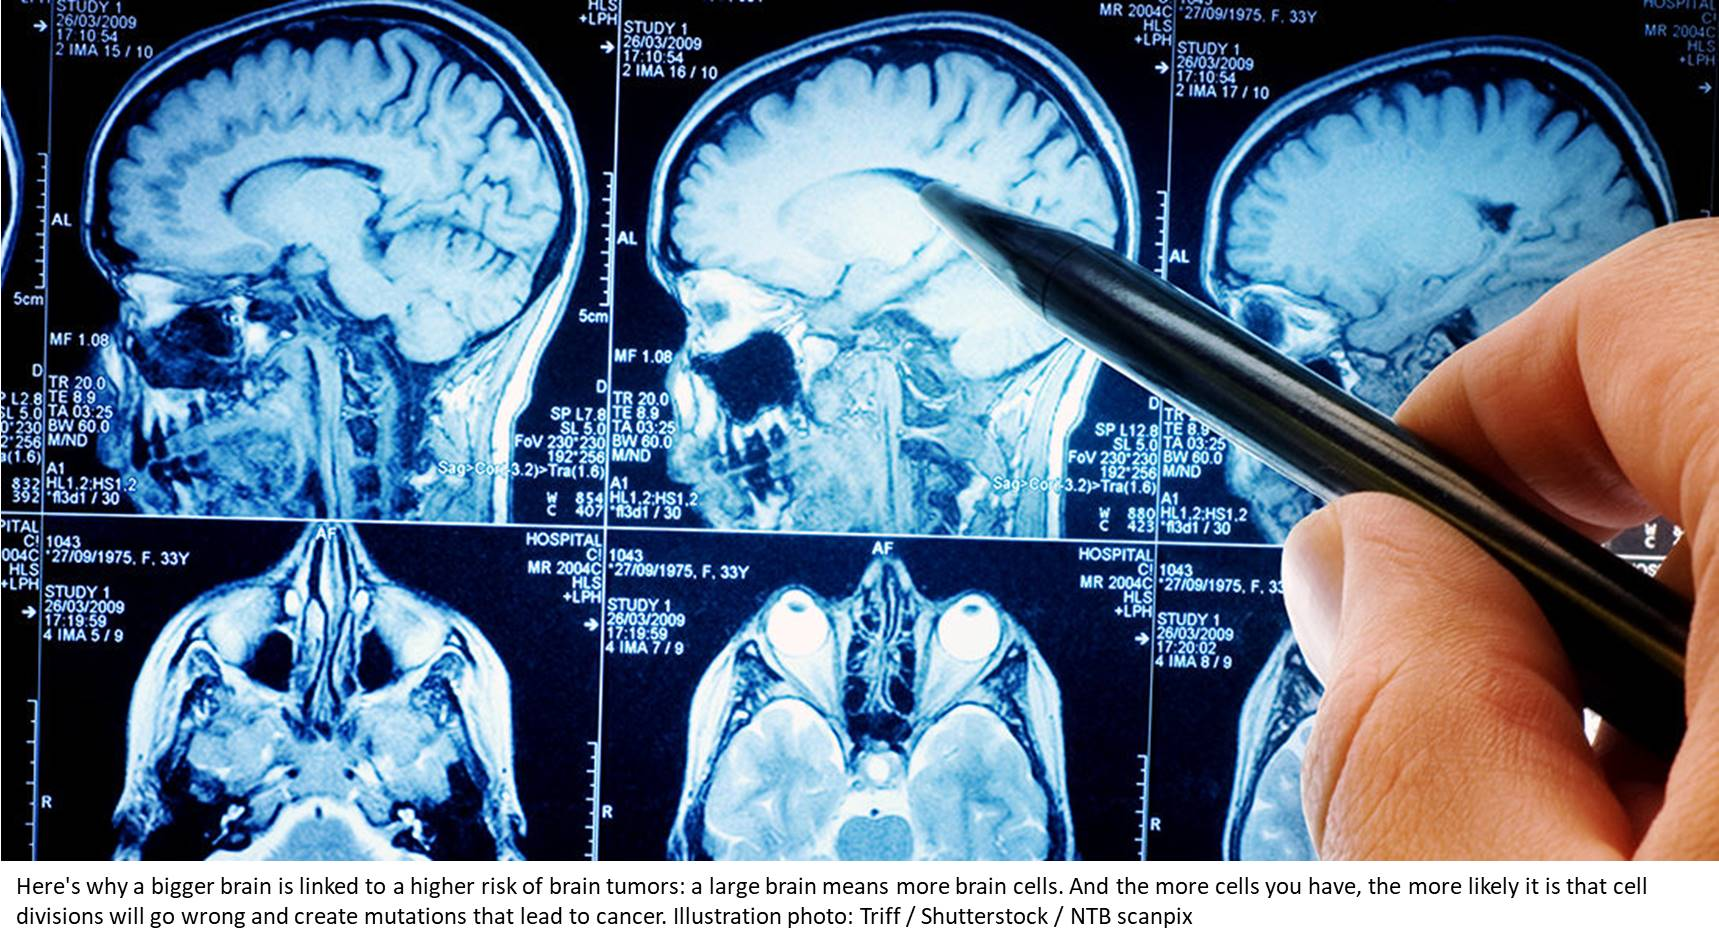 The larger the brain, the greater the risk of a brain tumor